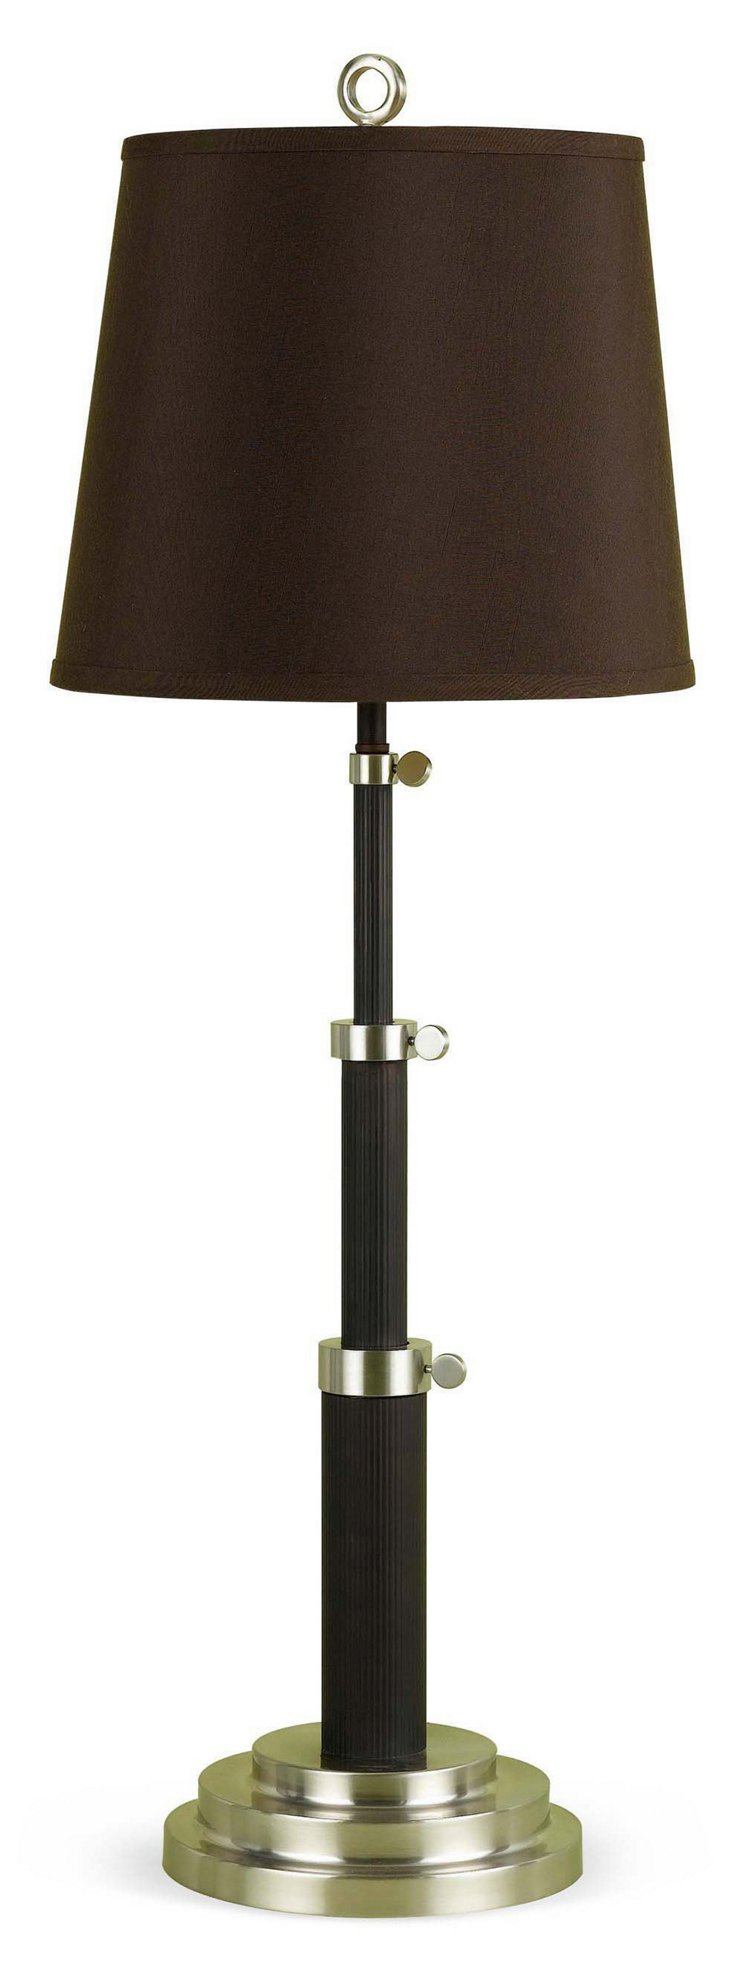 Scope Table Lamp, Oil-Rubbed Bronze